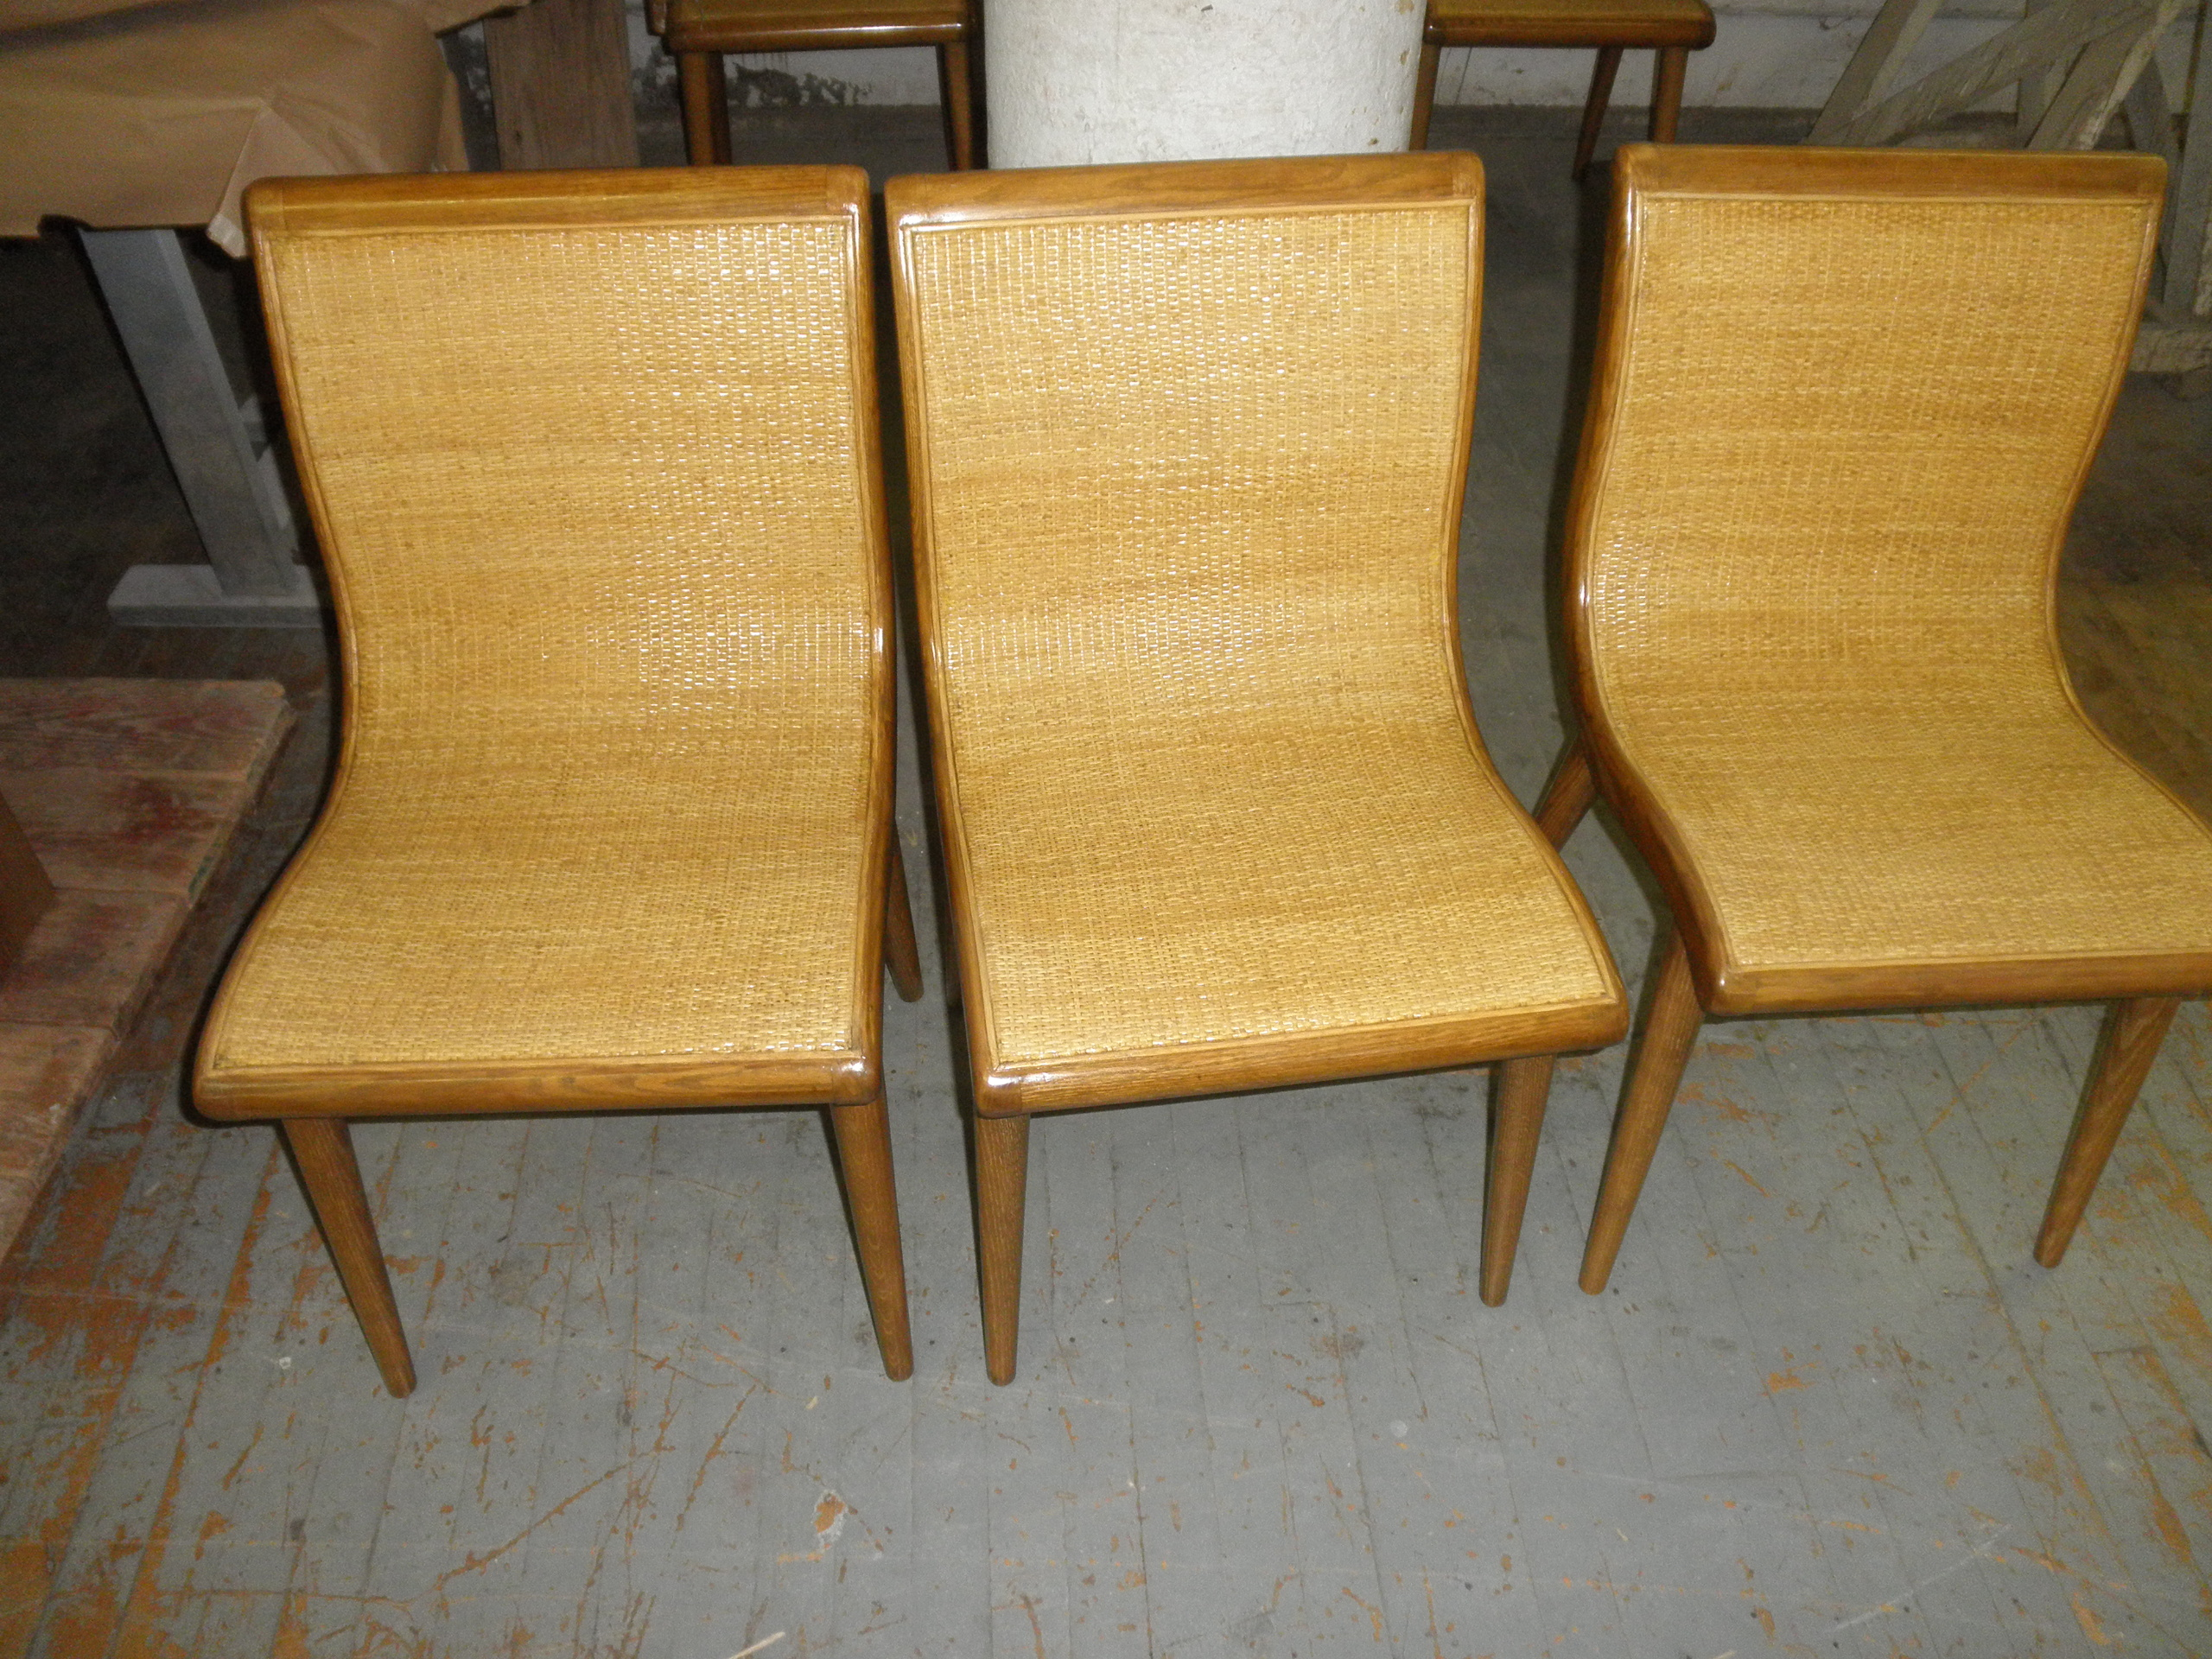 Chairs AFTER restoration